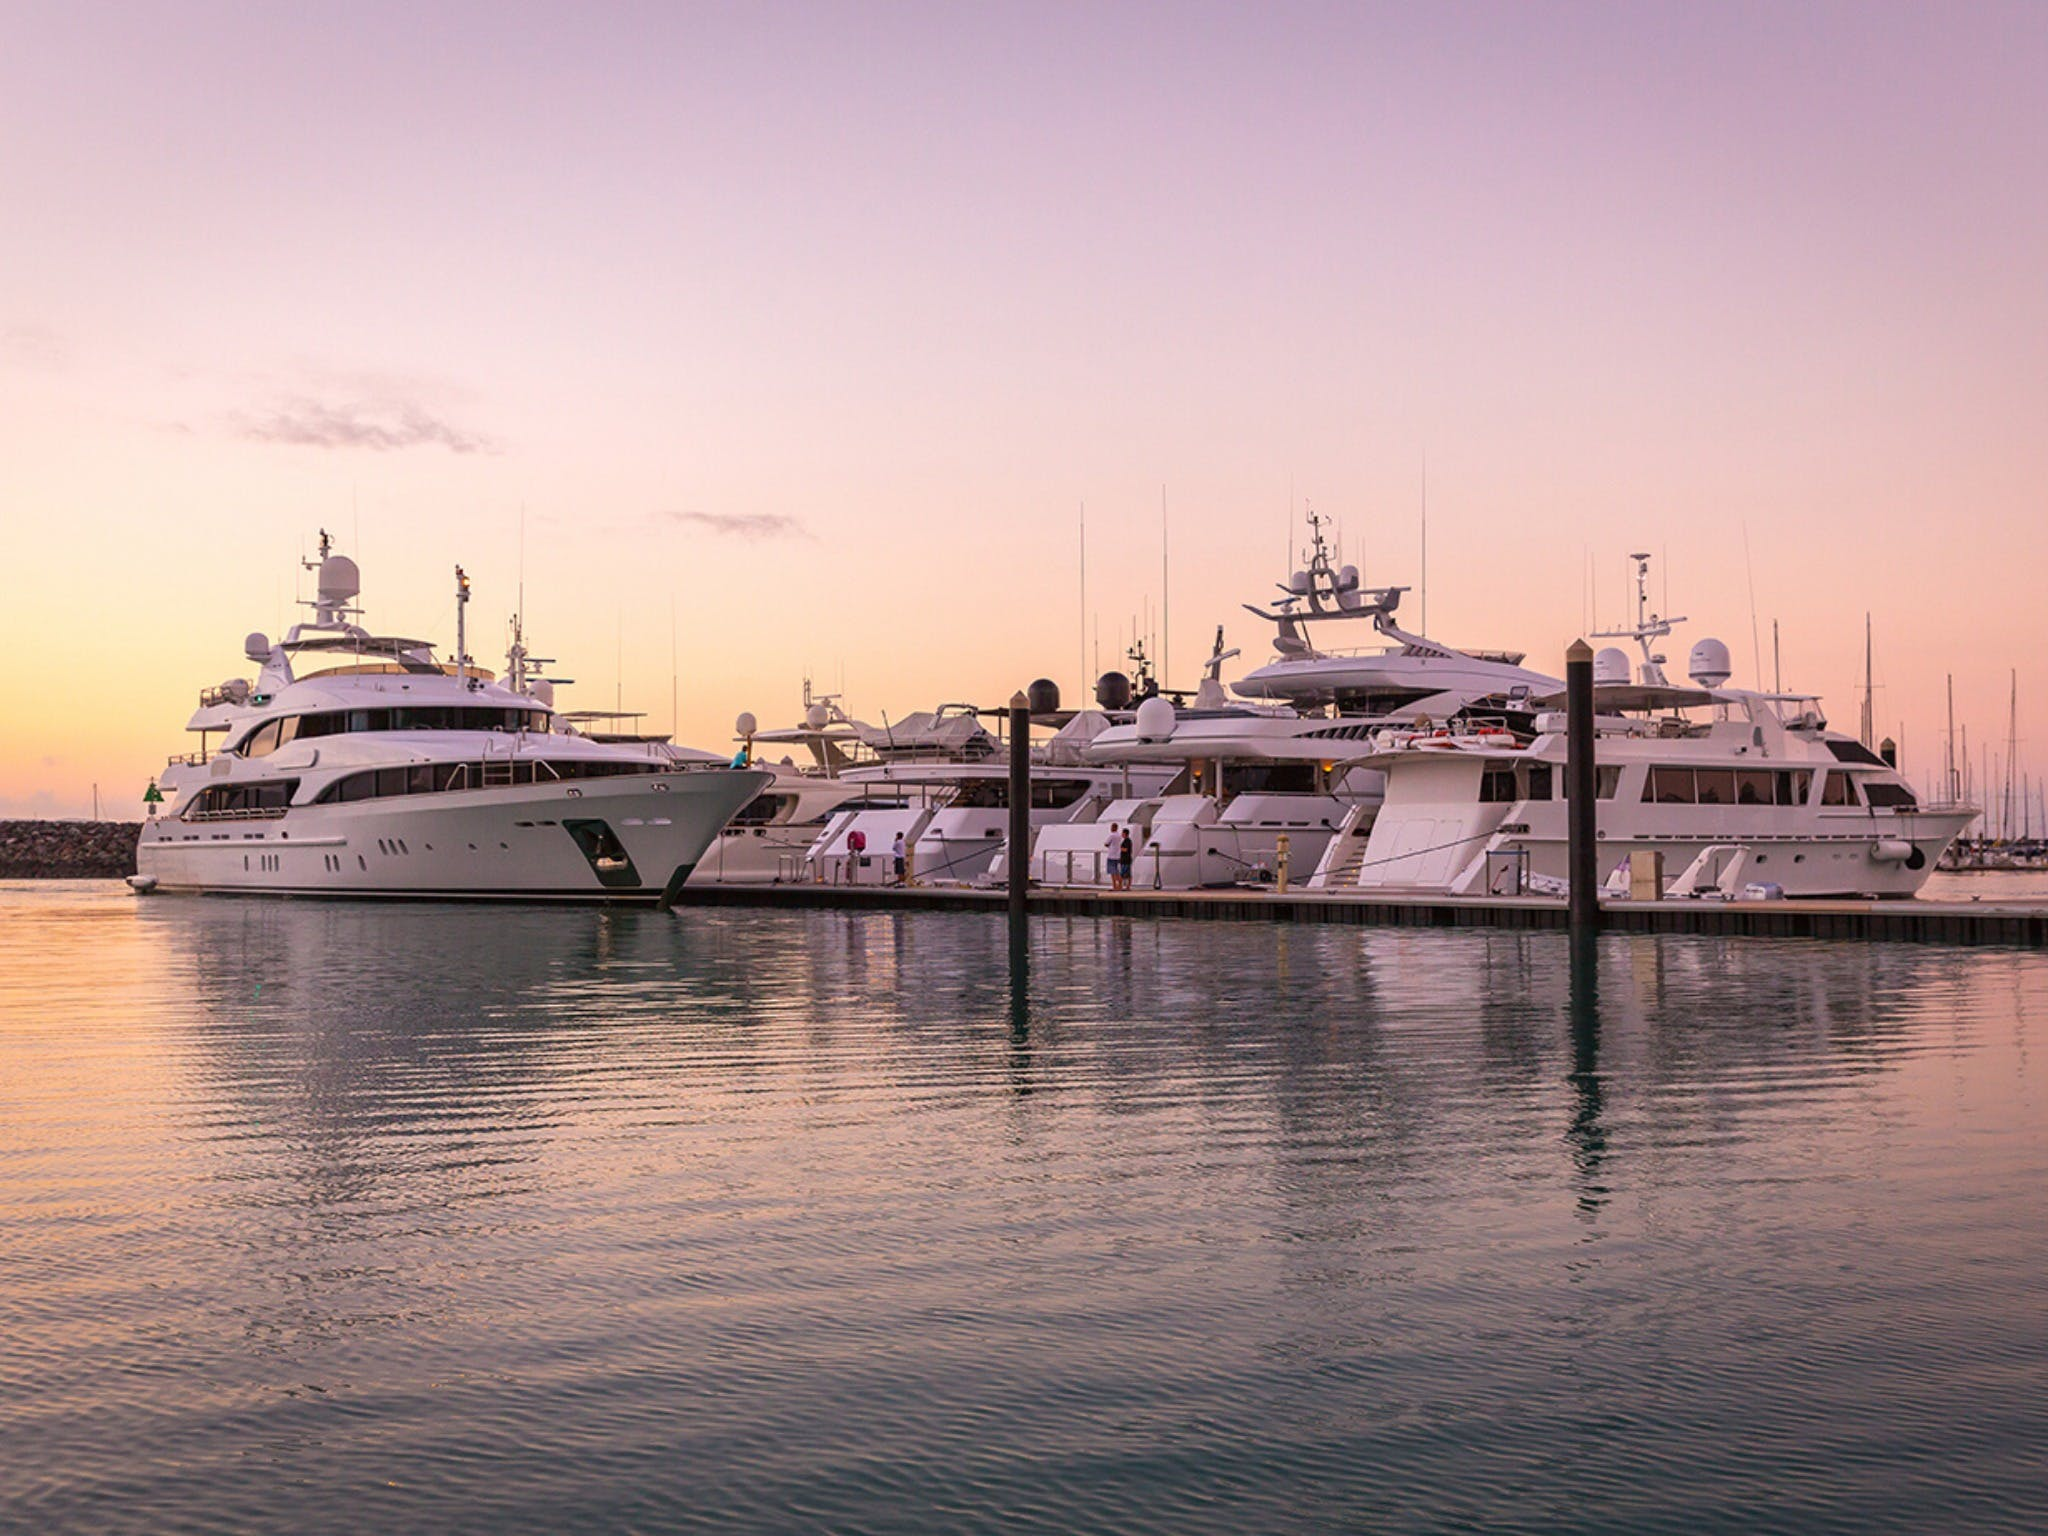 Australian Superyacht Rendezvous - Great Barrier Reef edition - Tweed Heads Accommodation